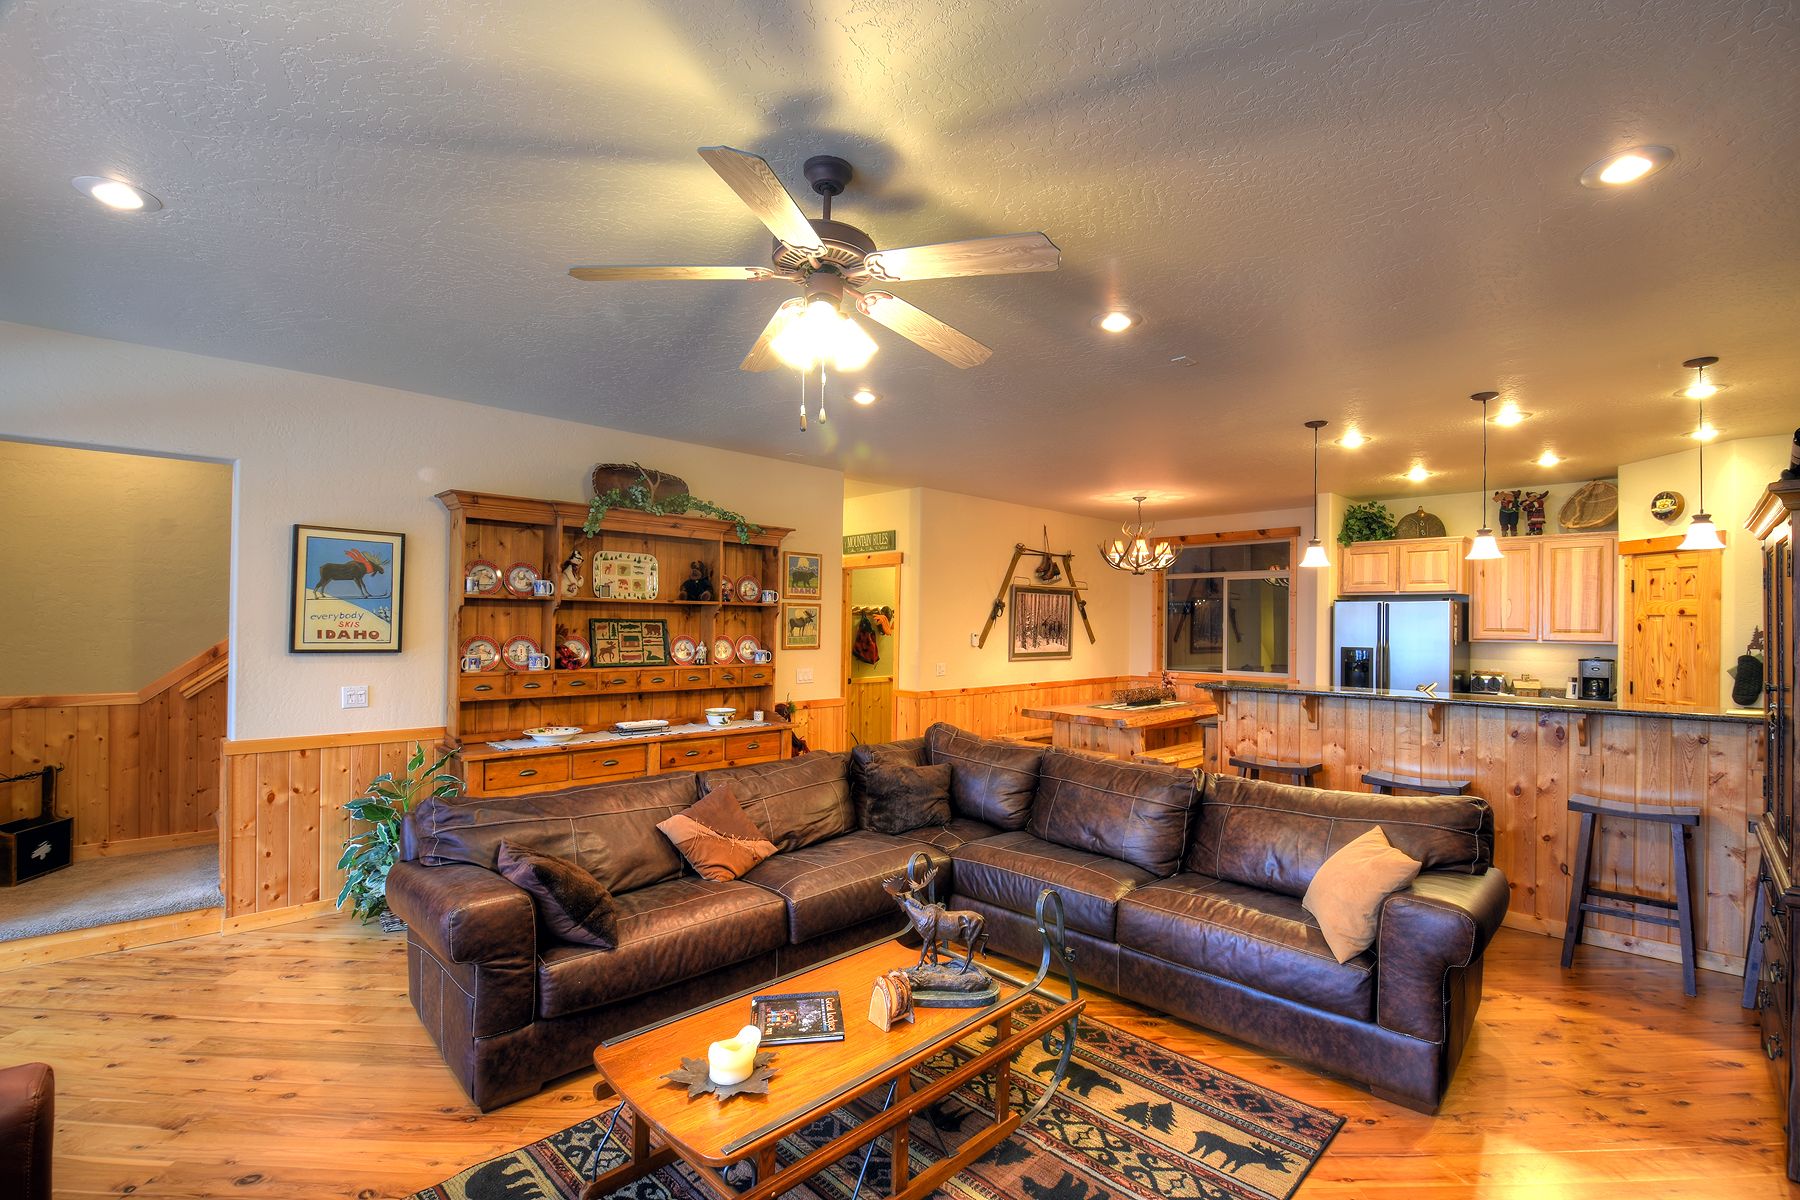 Single Family Home for Sale at Schweitzer Mountain Family Ski House 350 Crystal Springs Rd Sandpoint, Idaho 83864 United States